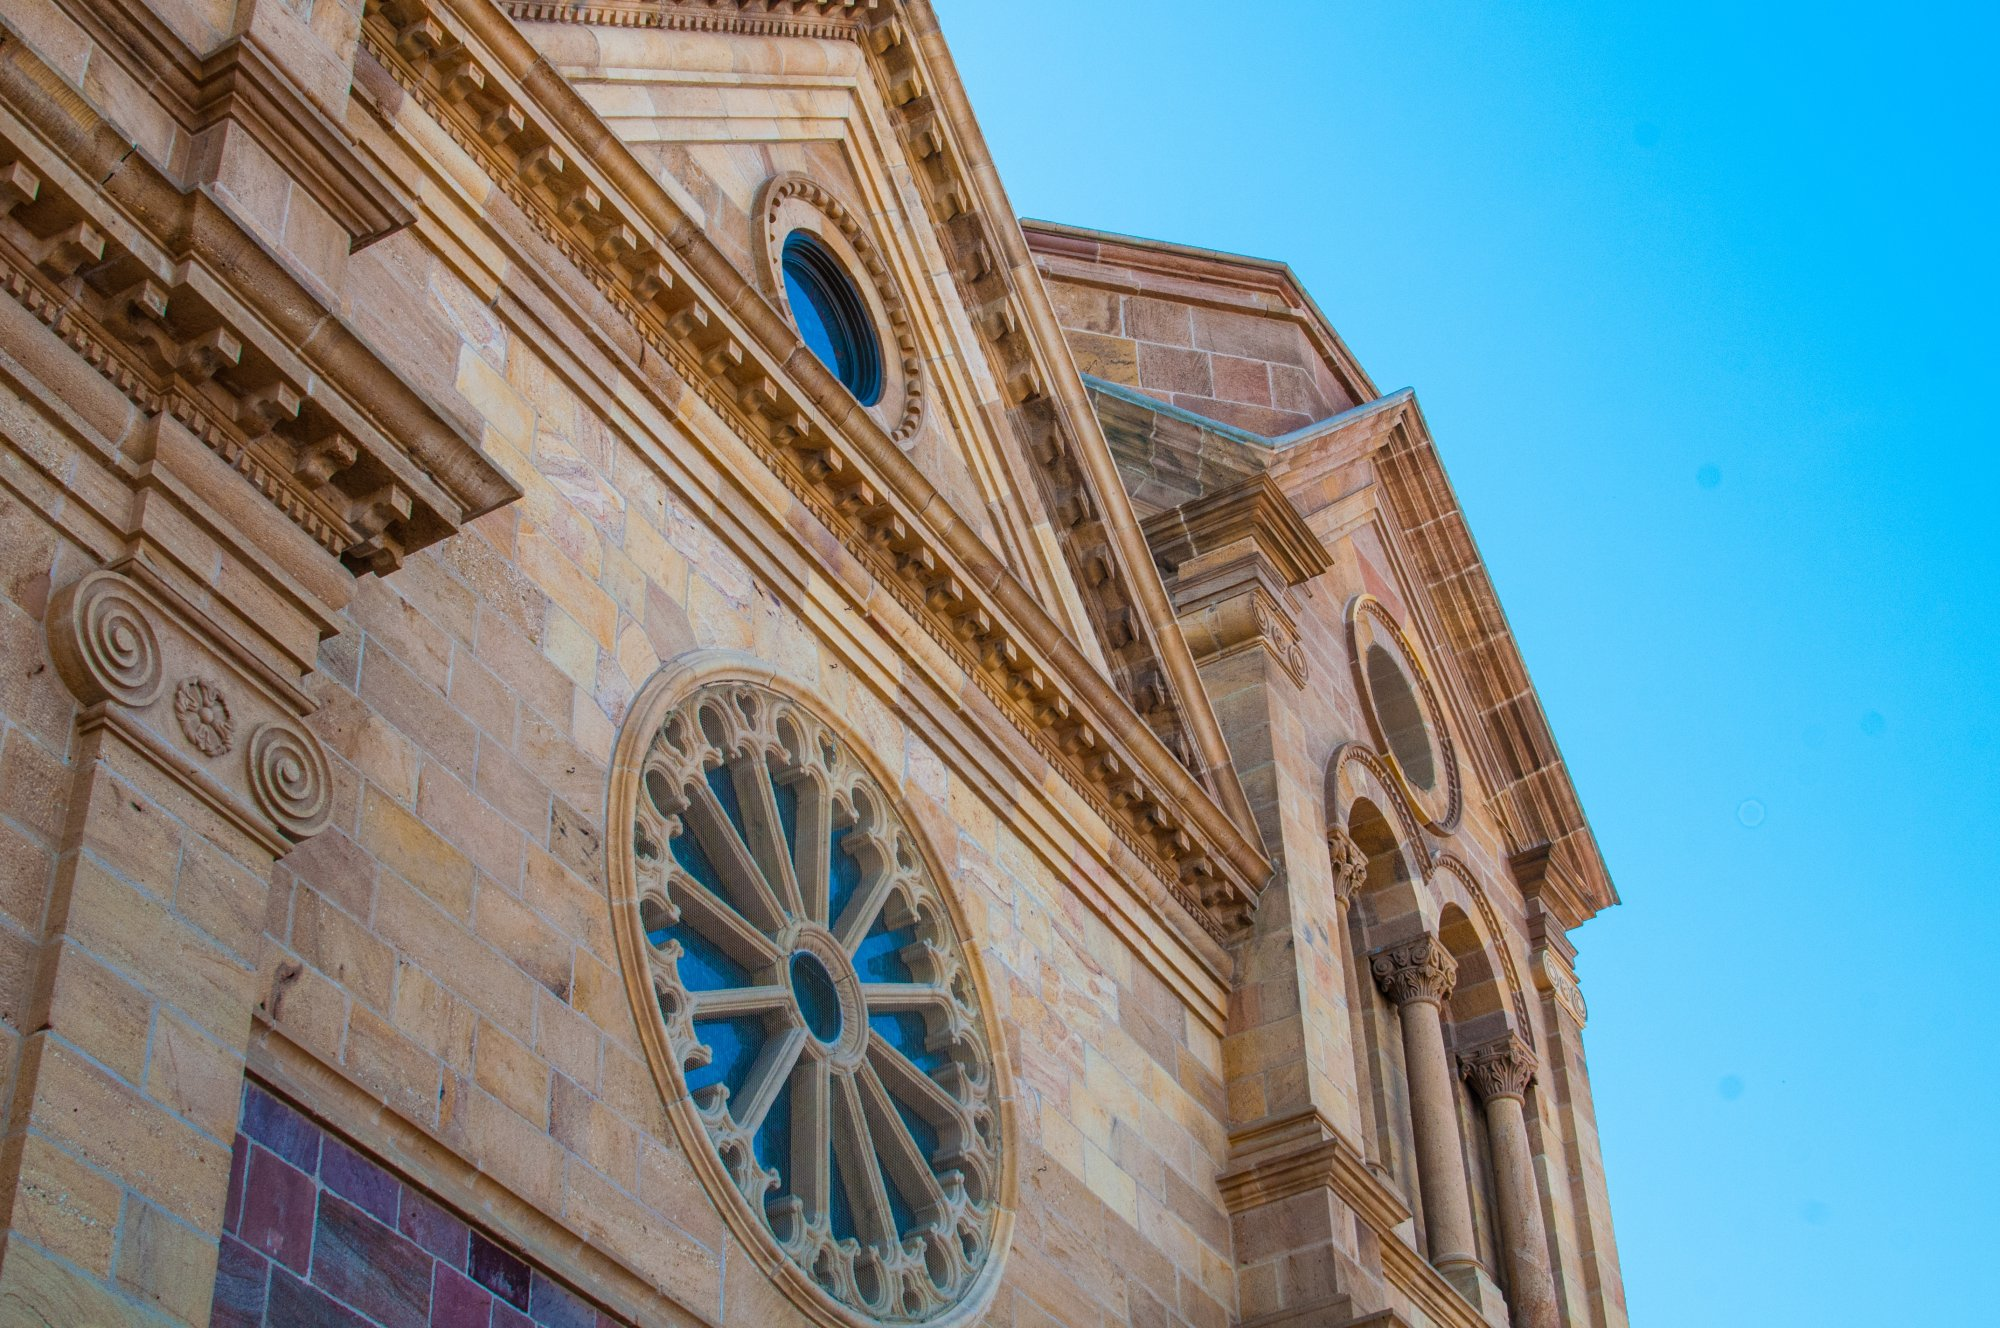 Cathedral Basilica of St. Francis of Assisi, Santa Fe, United States